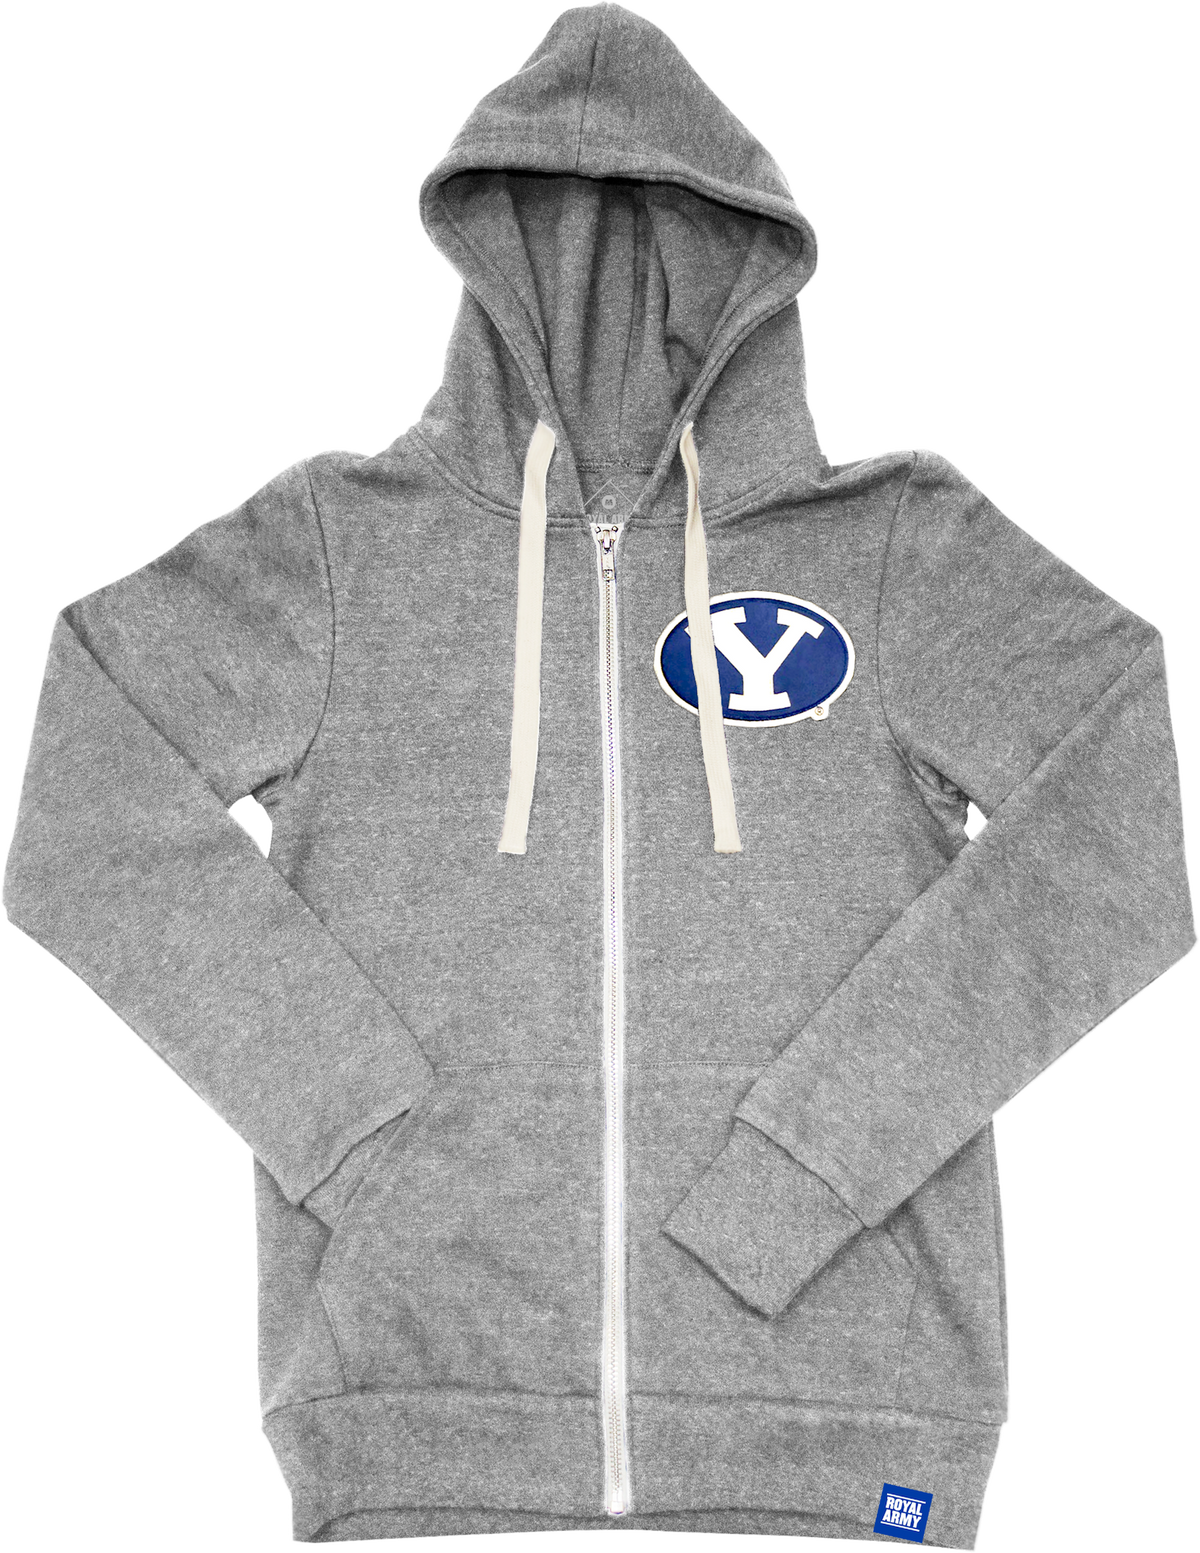 Full-Zip Tri-Blend Fleece Hoodie Heather Gray with Stretch Y Tackle Twill Patch